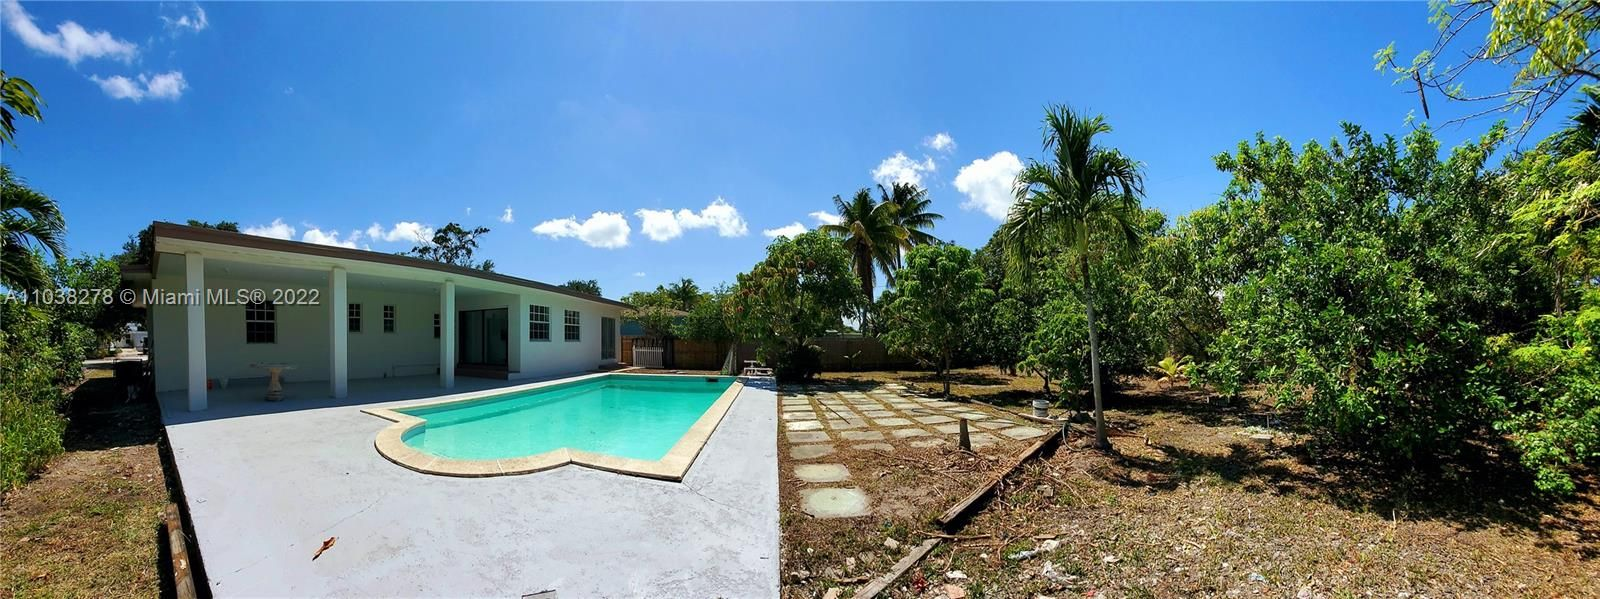 305 NW 124th St